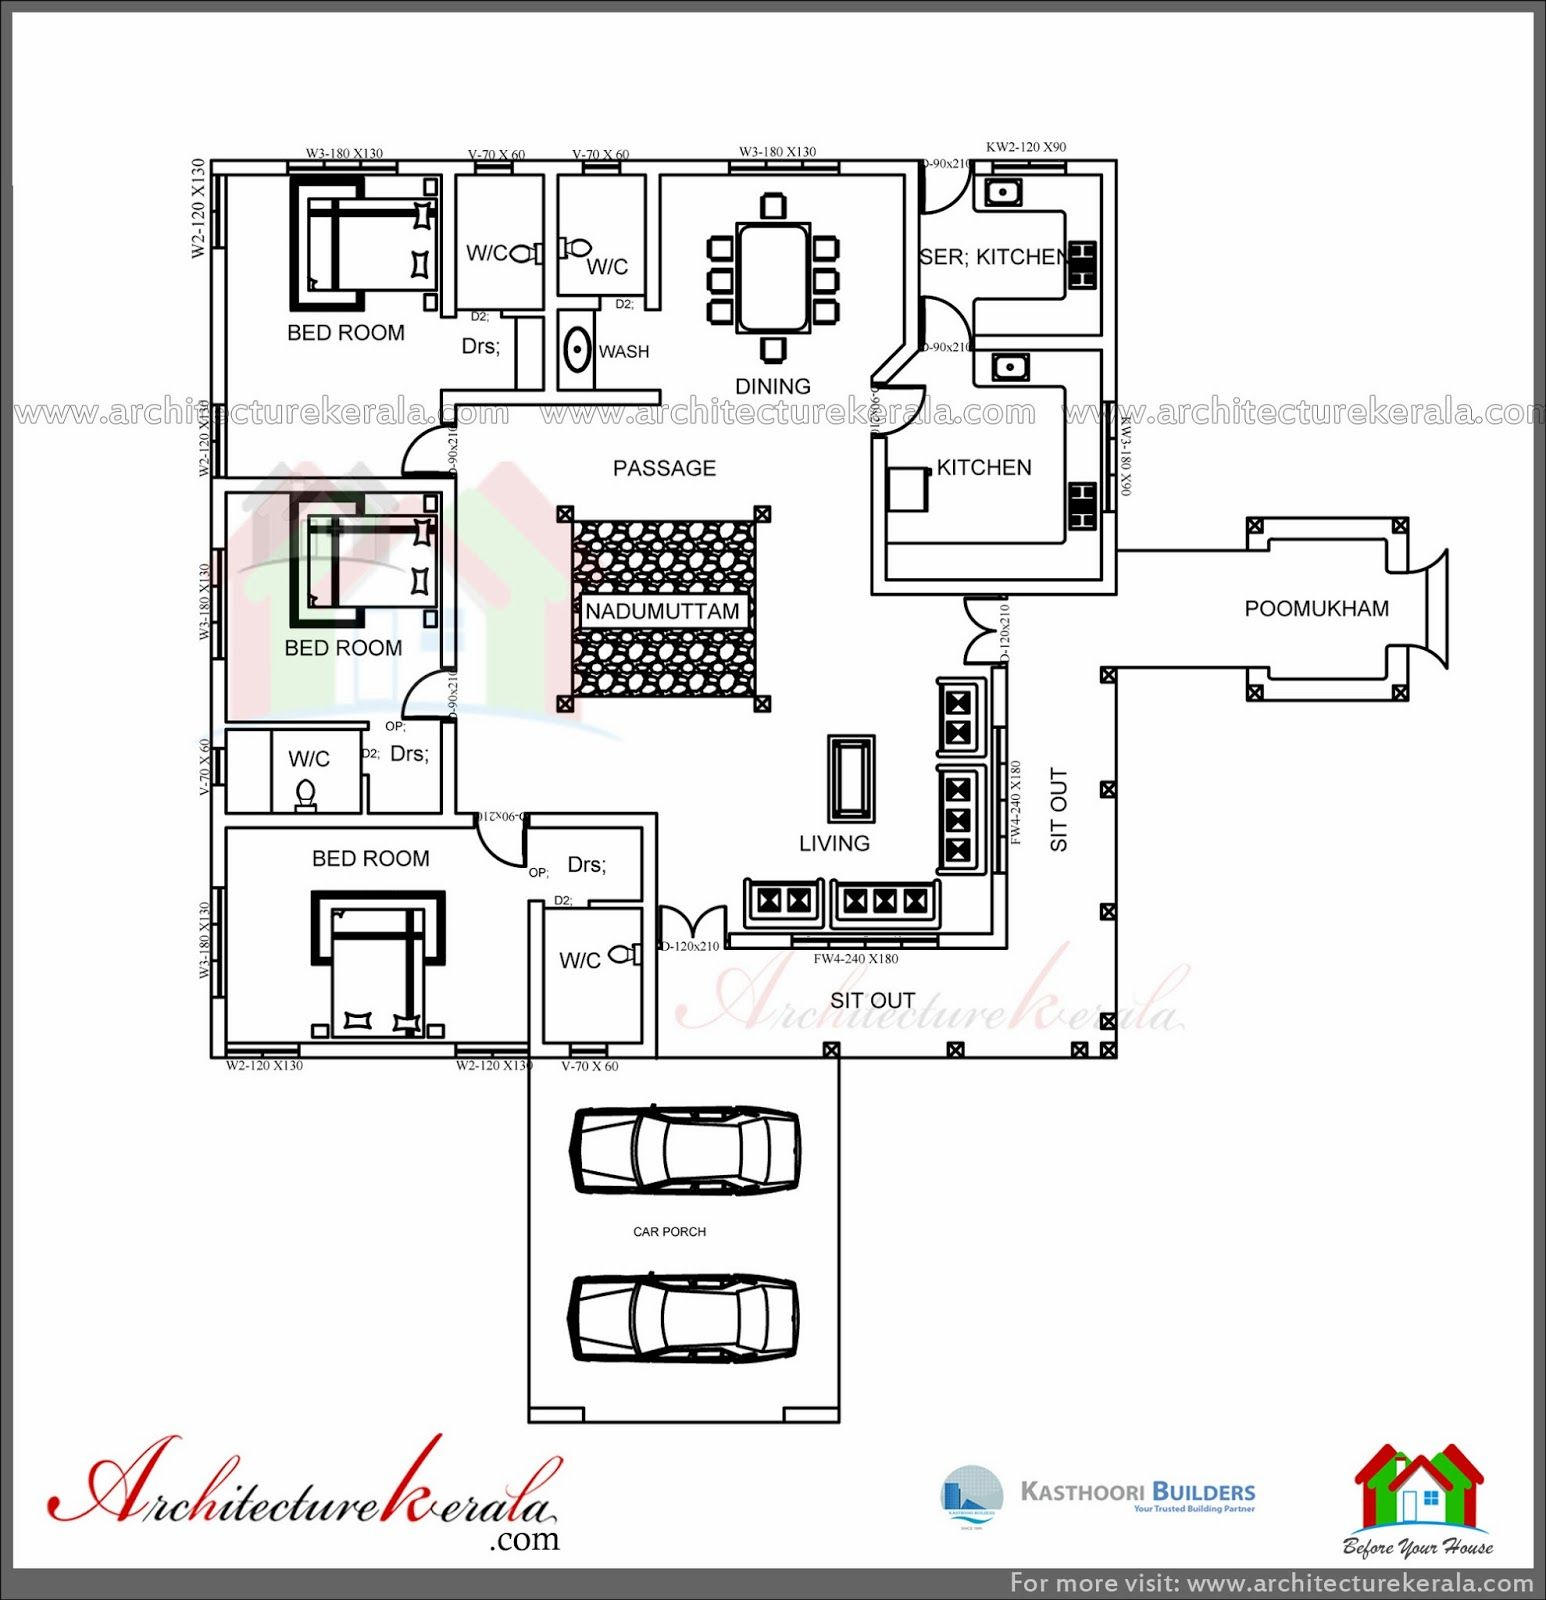 Architecture kerala traditional house plan with for Kerala style 2 bedroom house plans